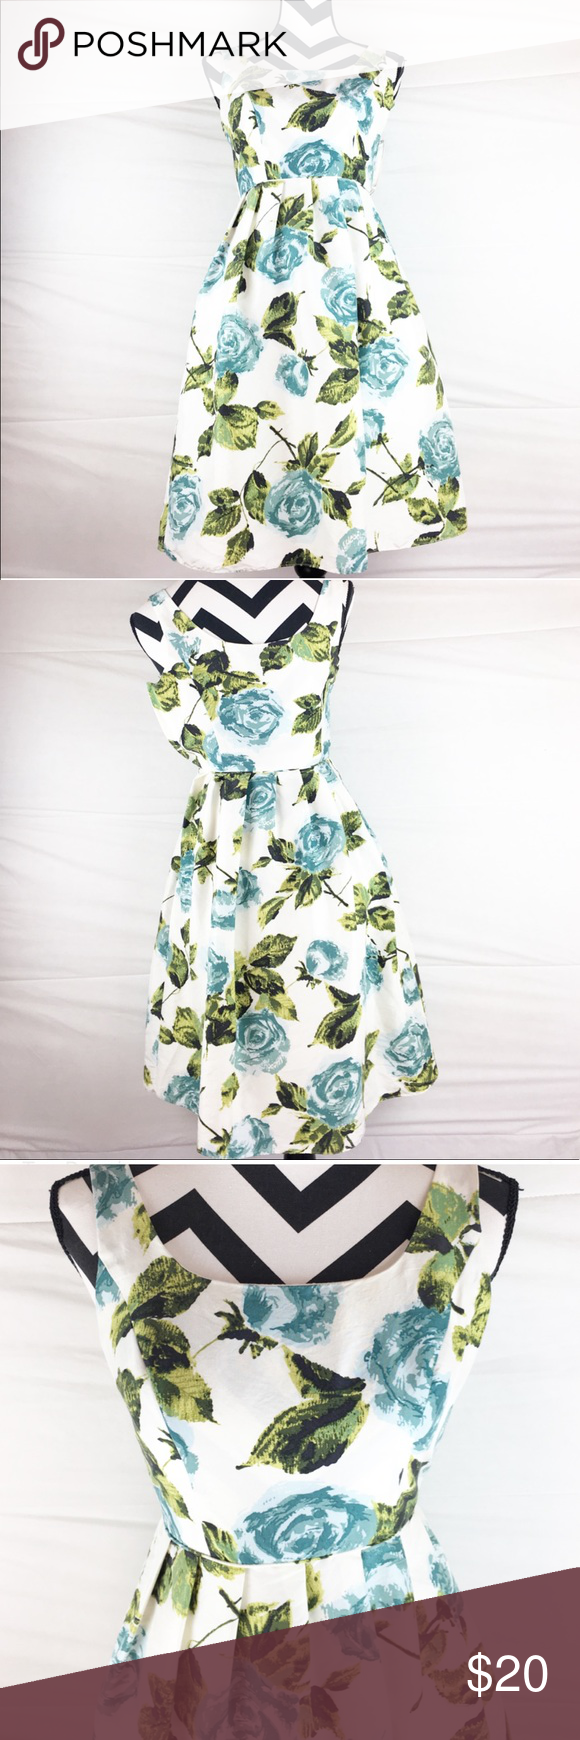 Ann taylor floral sleeveless dress ann taylor floral dress white ann taylor floral sleeveless dress ann taylor floral dress white dress with blue flowers and green leaves rounded neck pre owned good condition izmirmasajfo